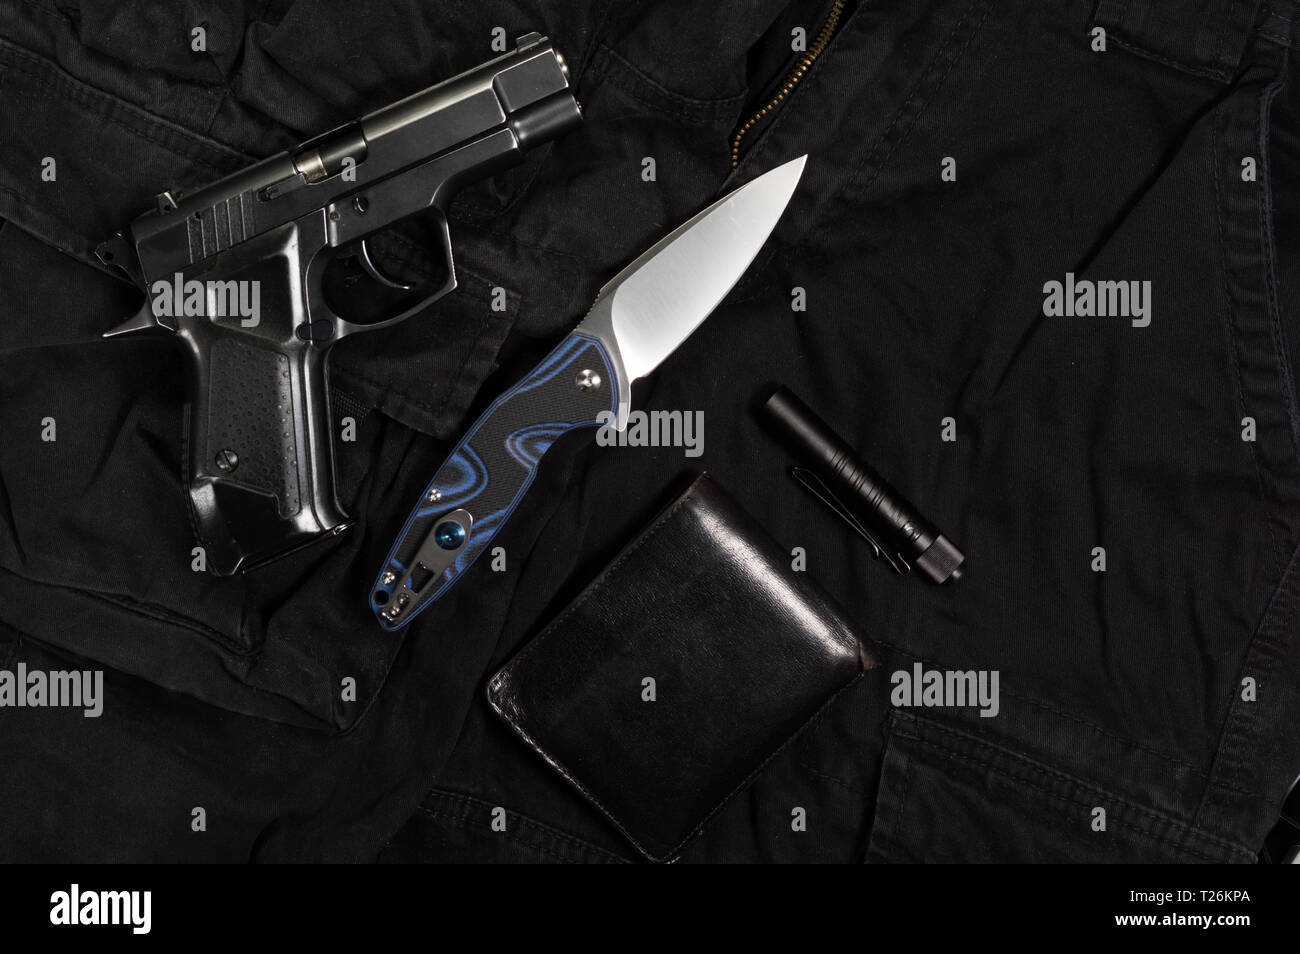 Special agent items. Items of military or police. Top. - Stock Image